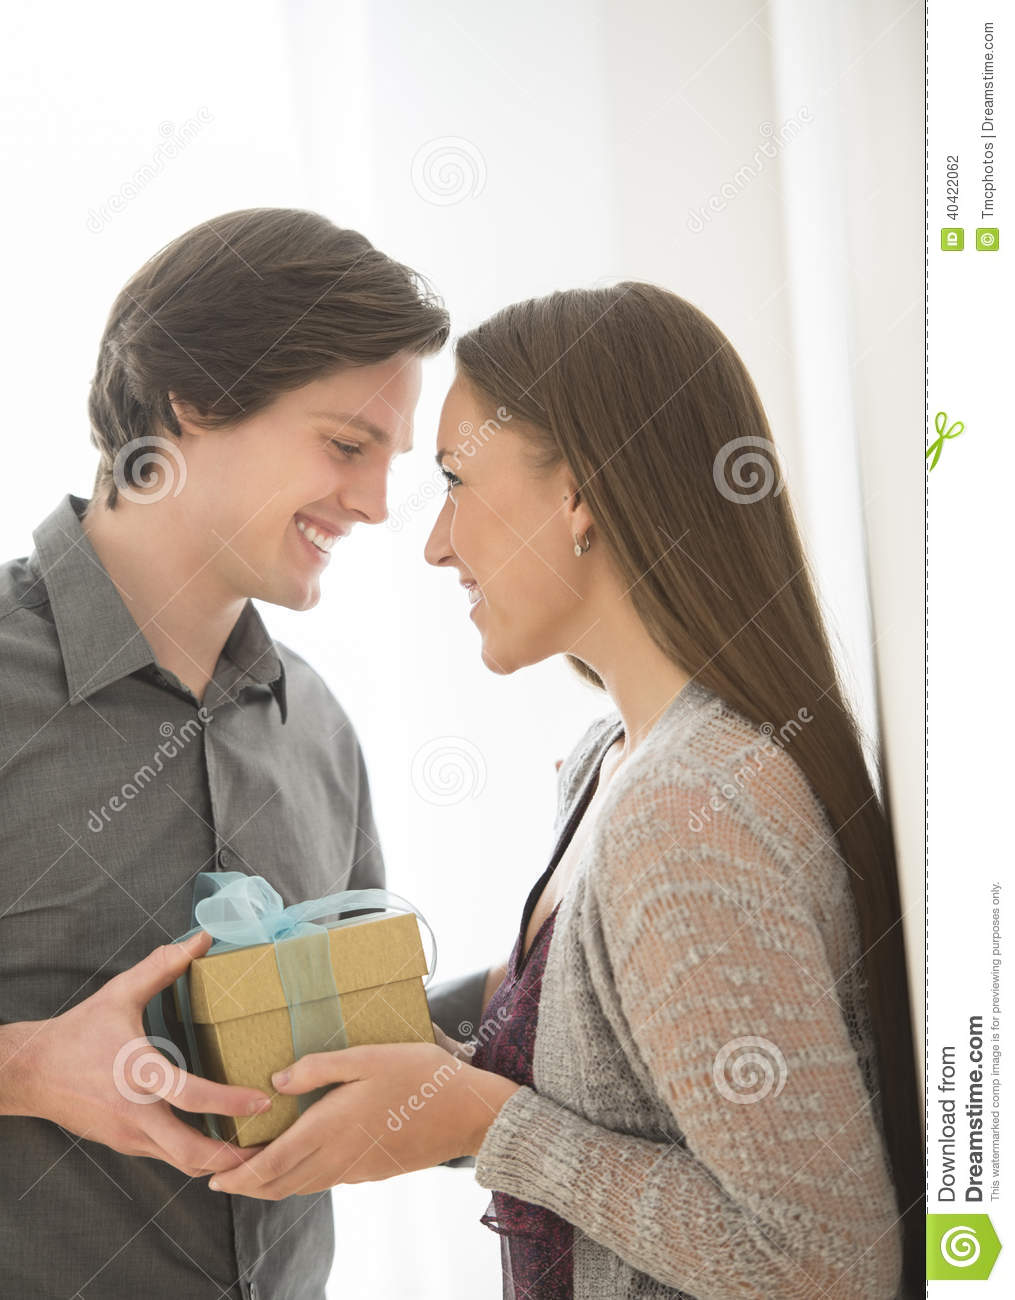 Affectionate Man Giving Birthday Gift To Woman